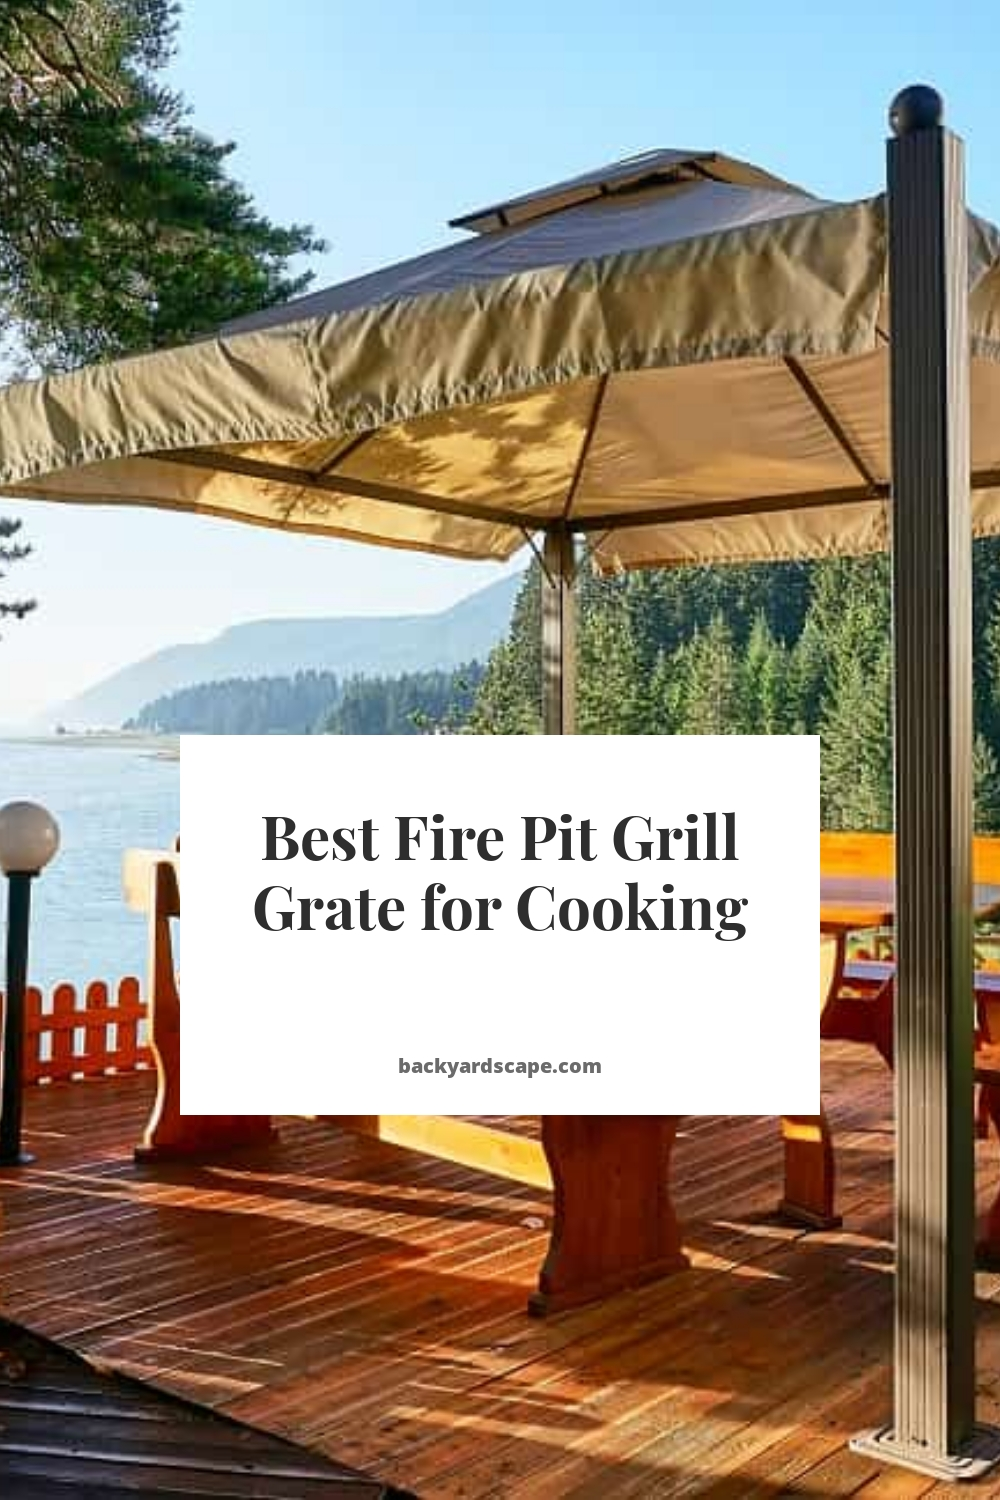 Best Fire Pit Grill Grate for Cooking